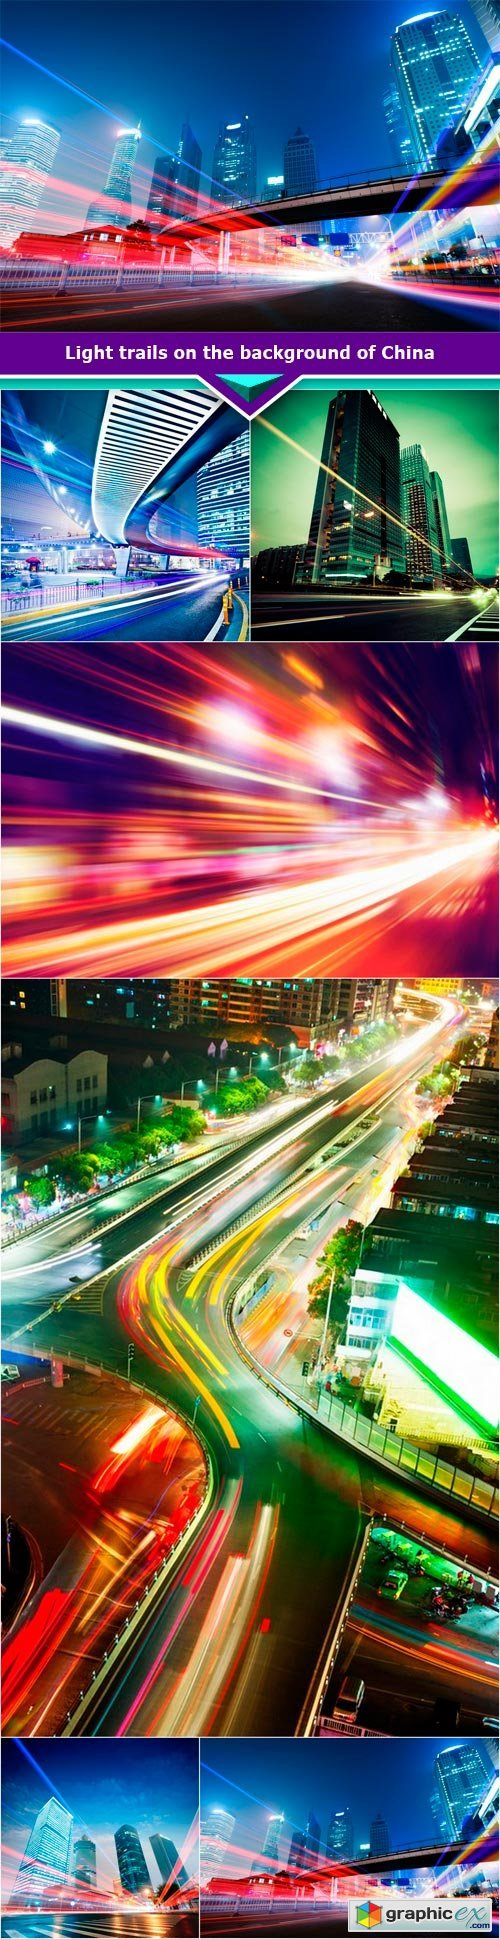 Light trails on the background of China 6x JPEG